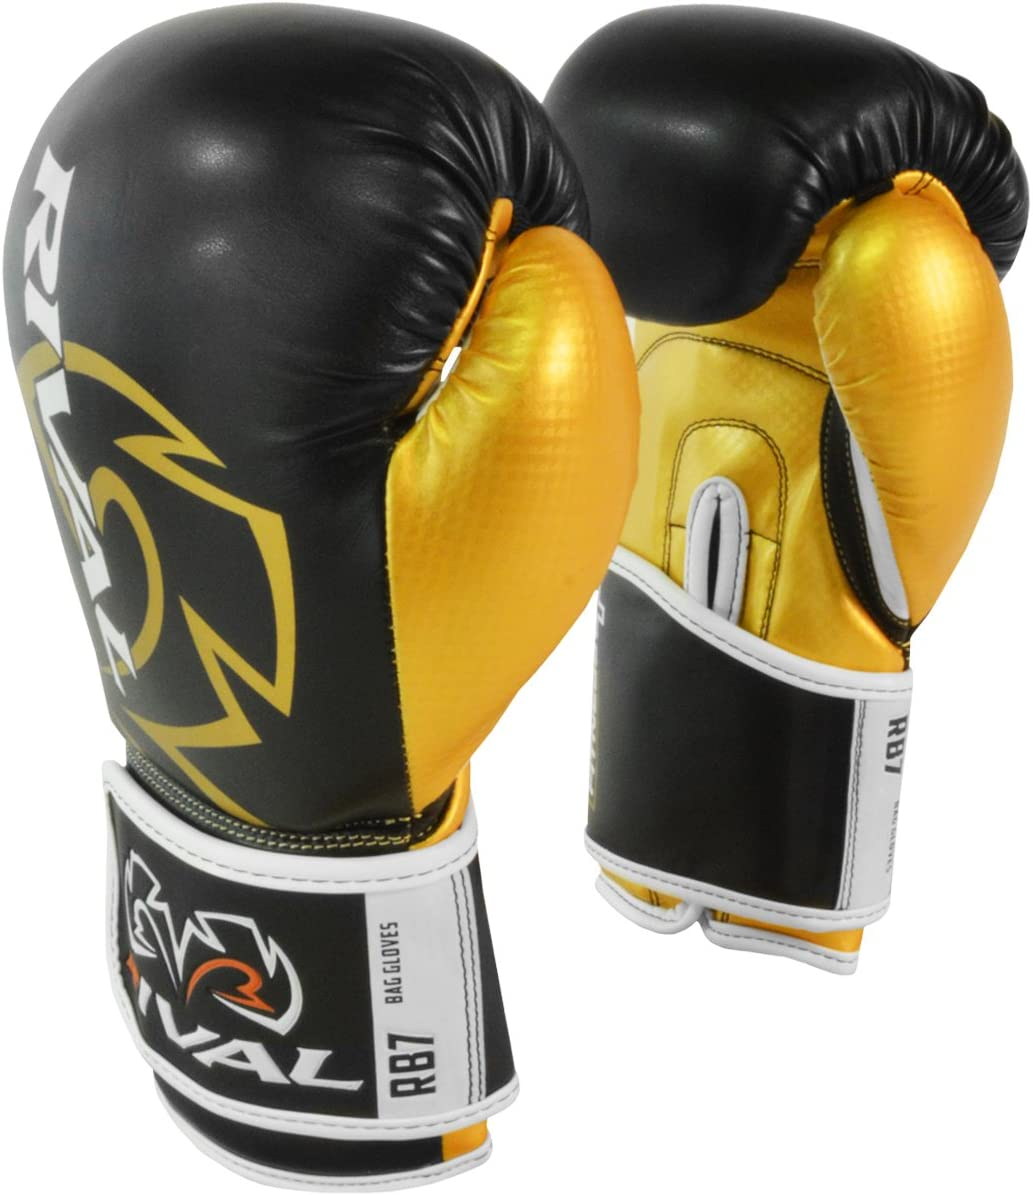 Gold Rival Boxing RB7 Fitness Plus MMA Training Bag Gloves Black